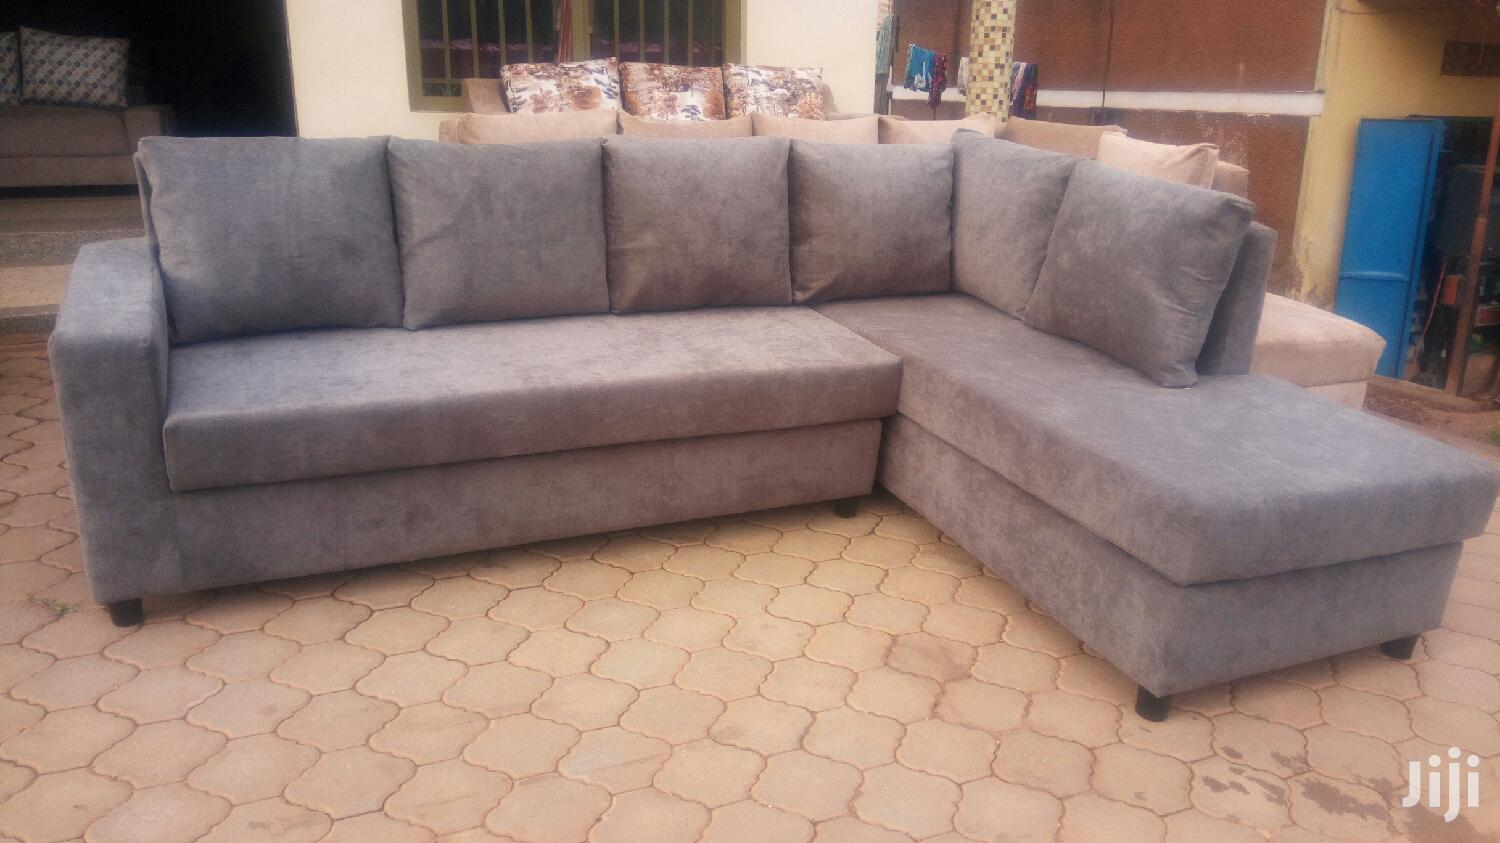 L Shape Sofa, Neat and Comfortable. Place You Order Today! | Furniture for sale in Kampala, Central Region, Uganda